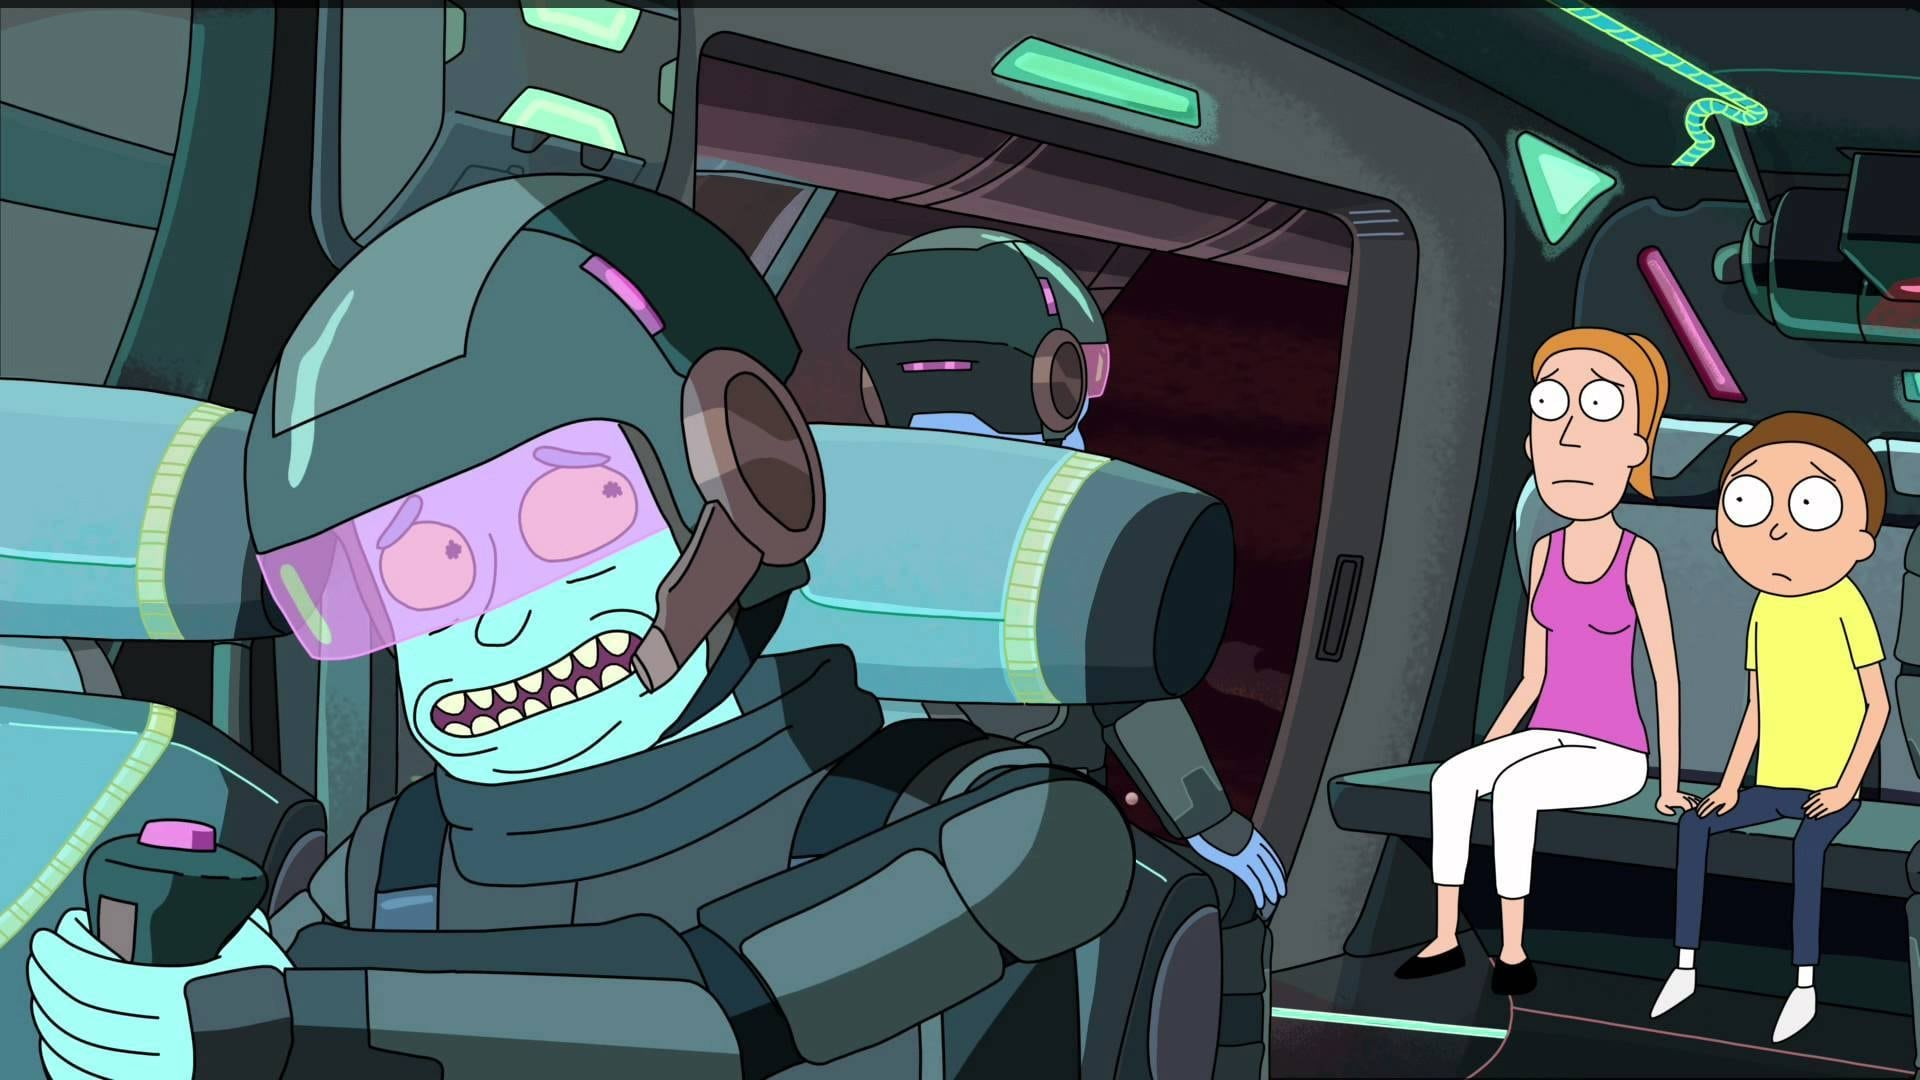 Rick and Morty - Season 2 Episode 3 : Auto Erotic Assimilation